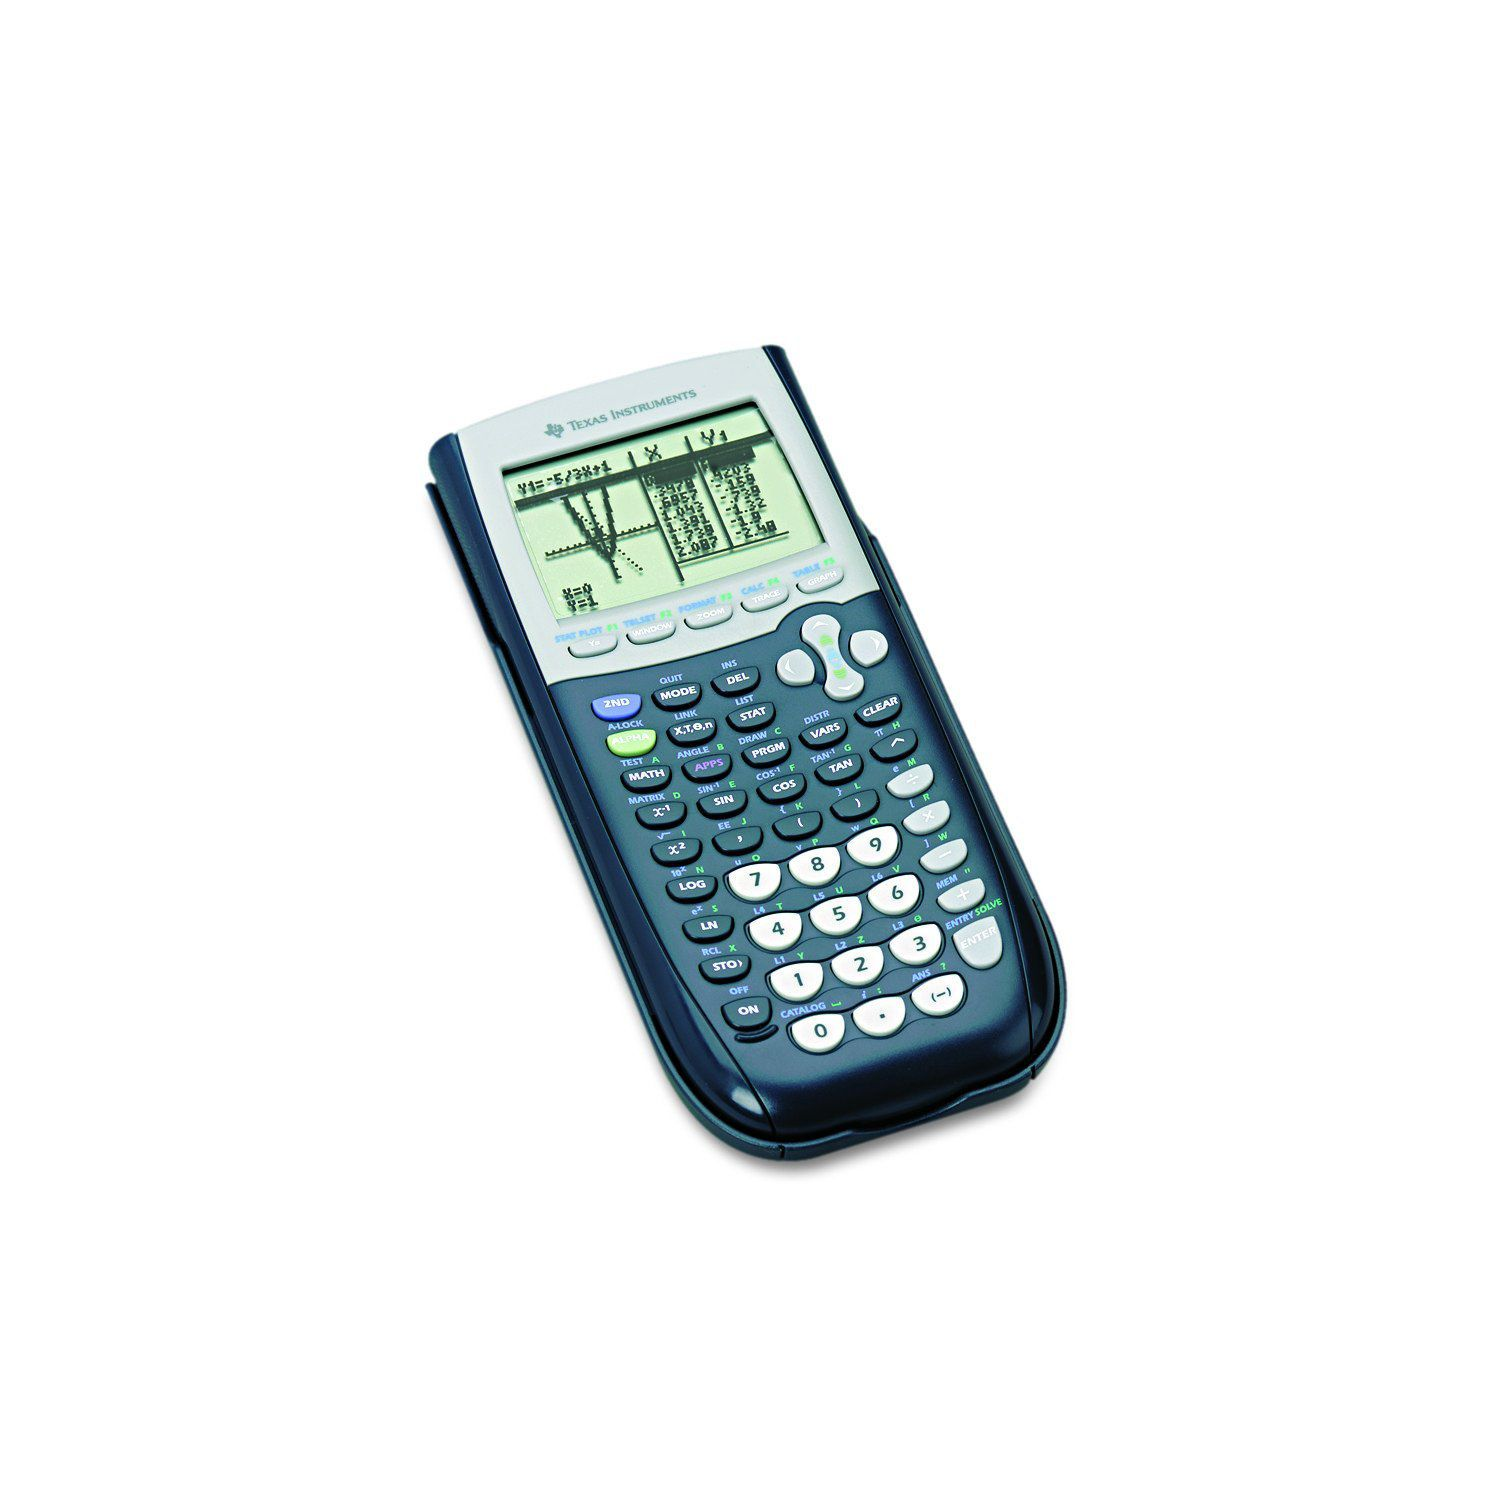 The 7 Best Graphing Calculators to Buy in 2018